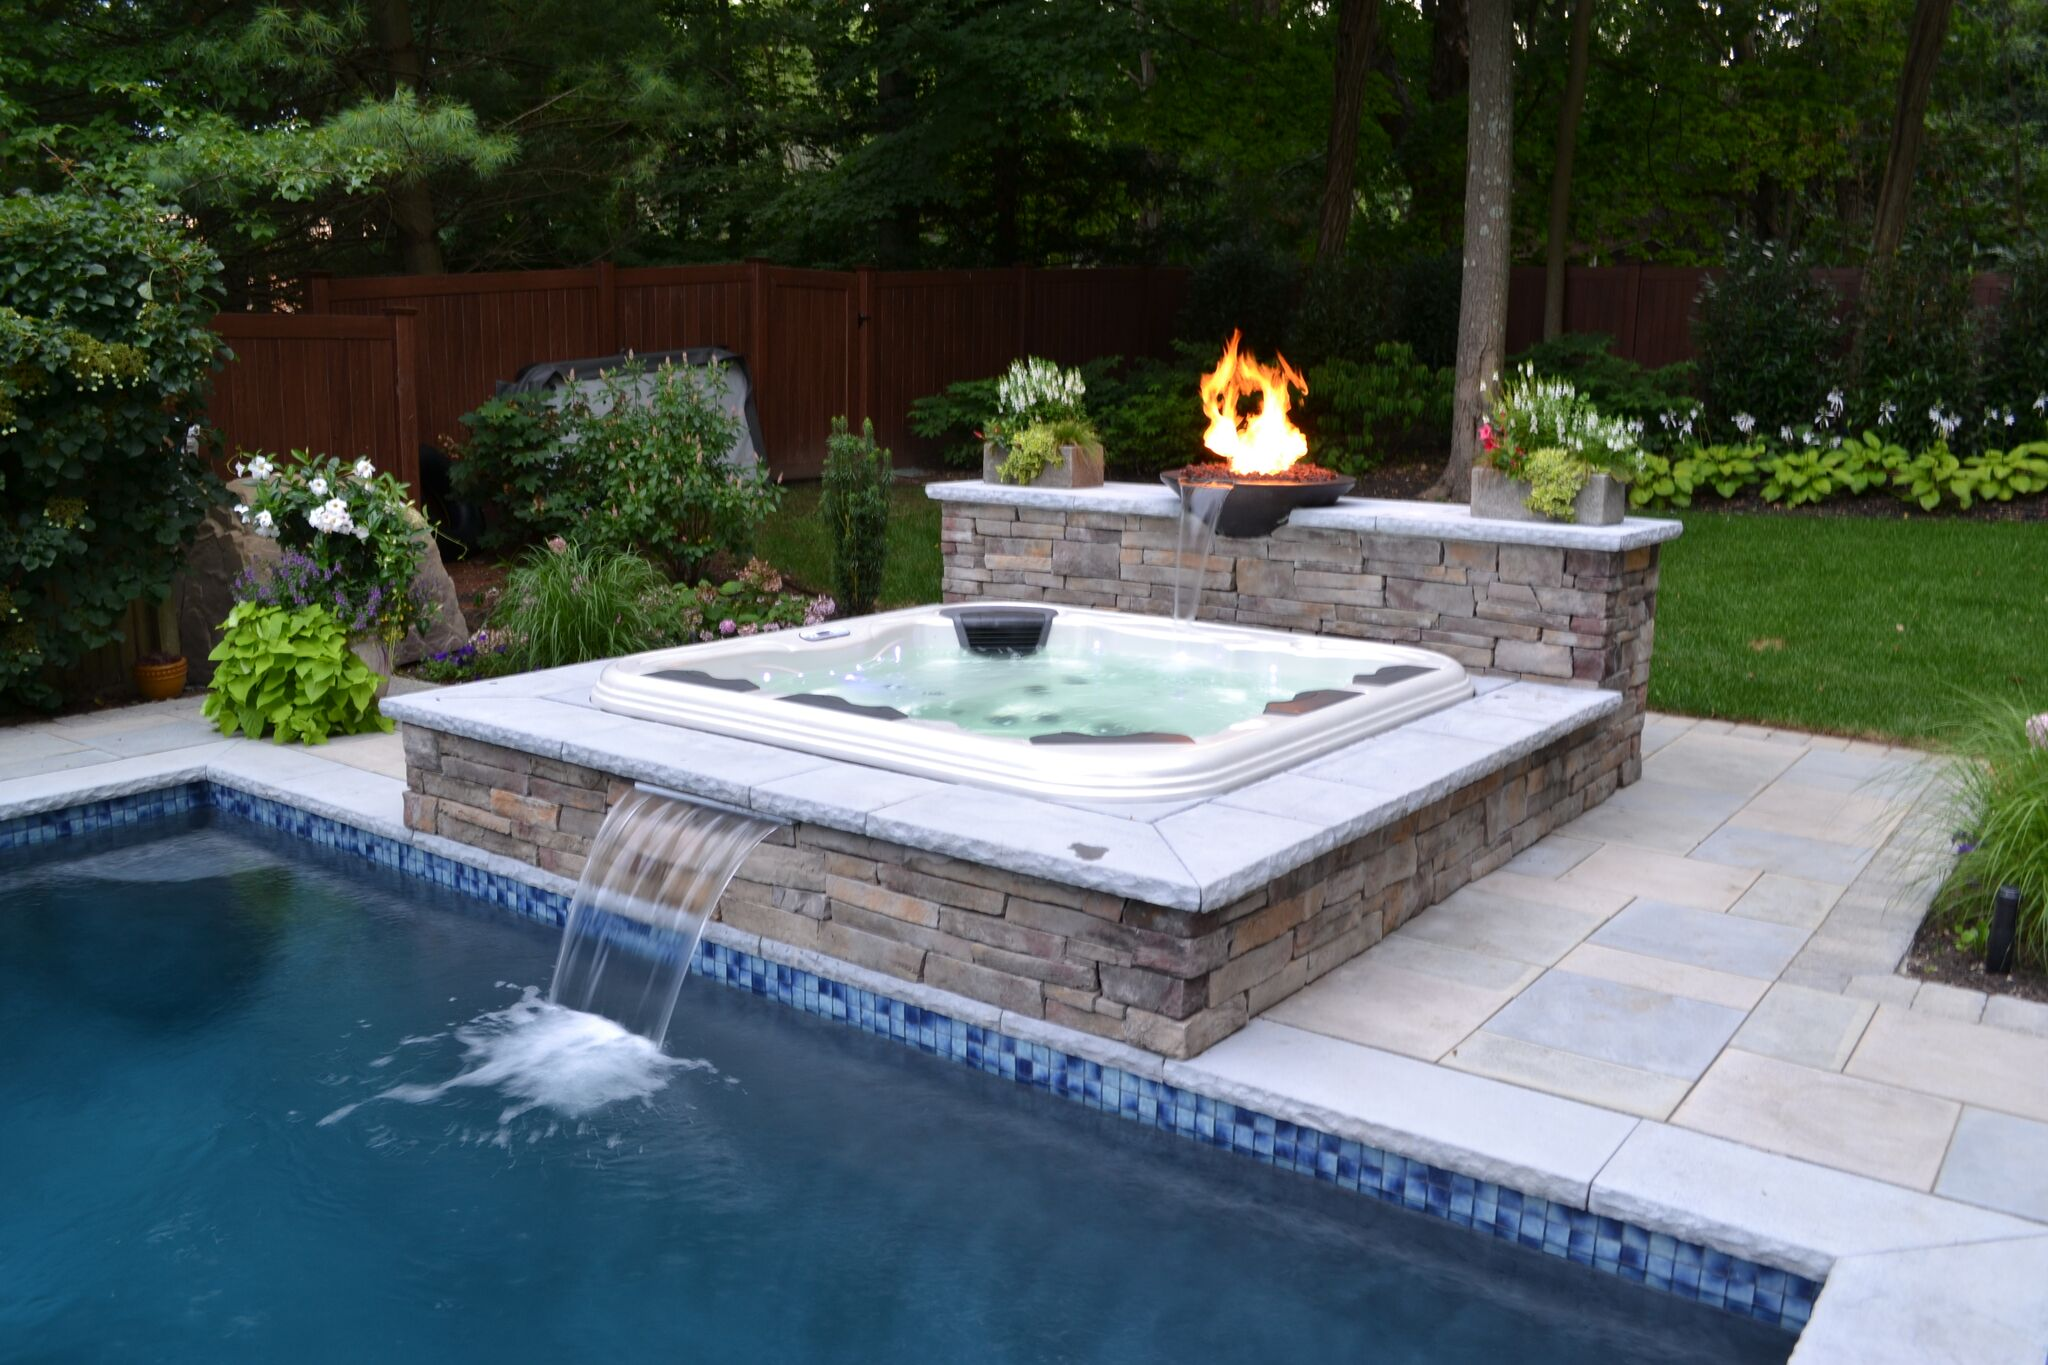 Hot Tub Added to Existing Pool: